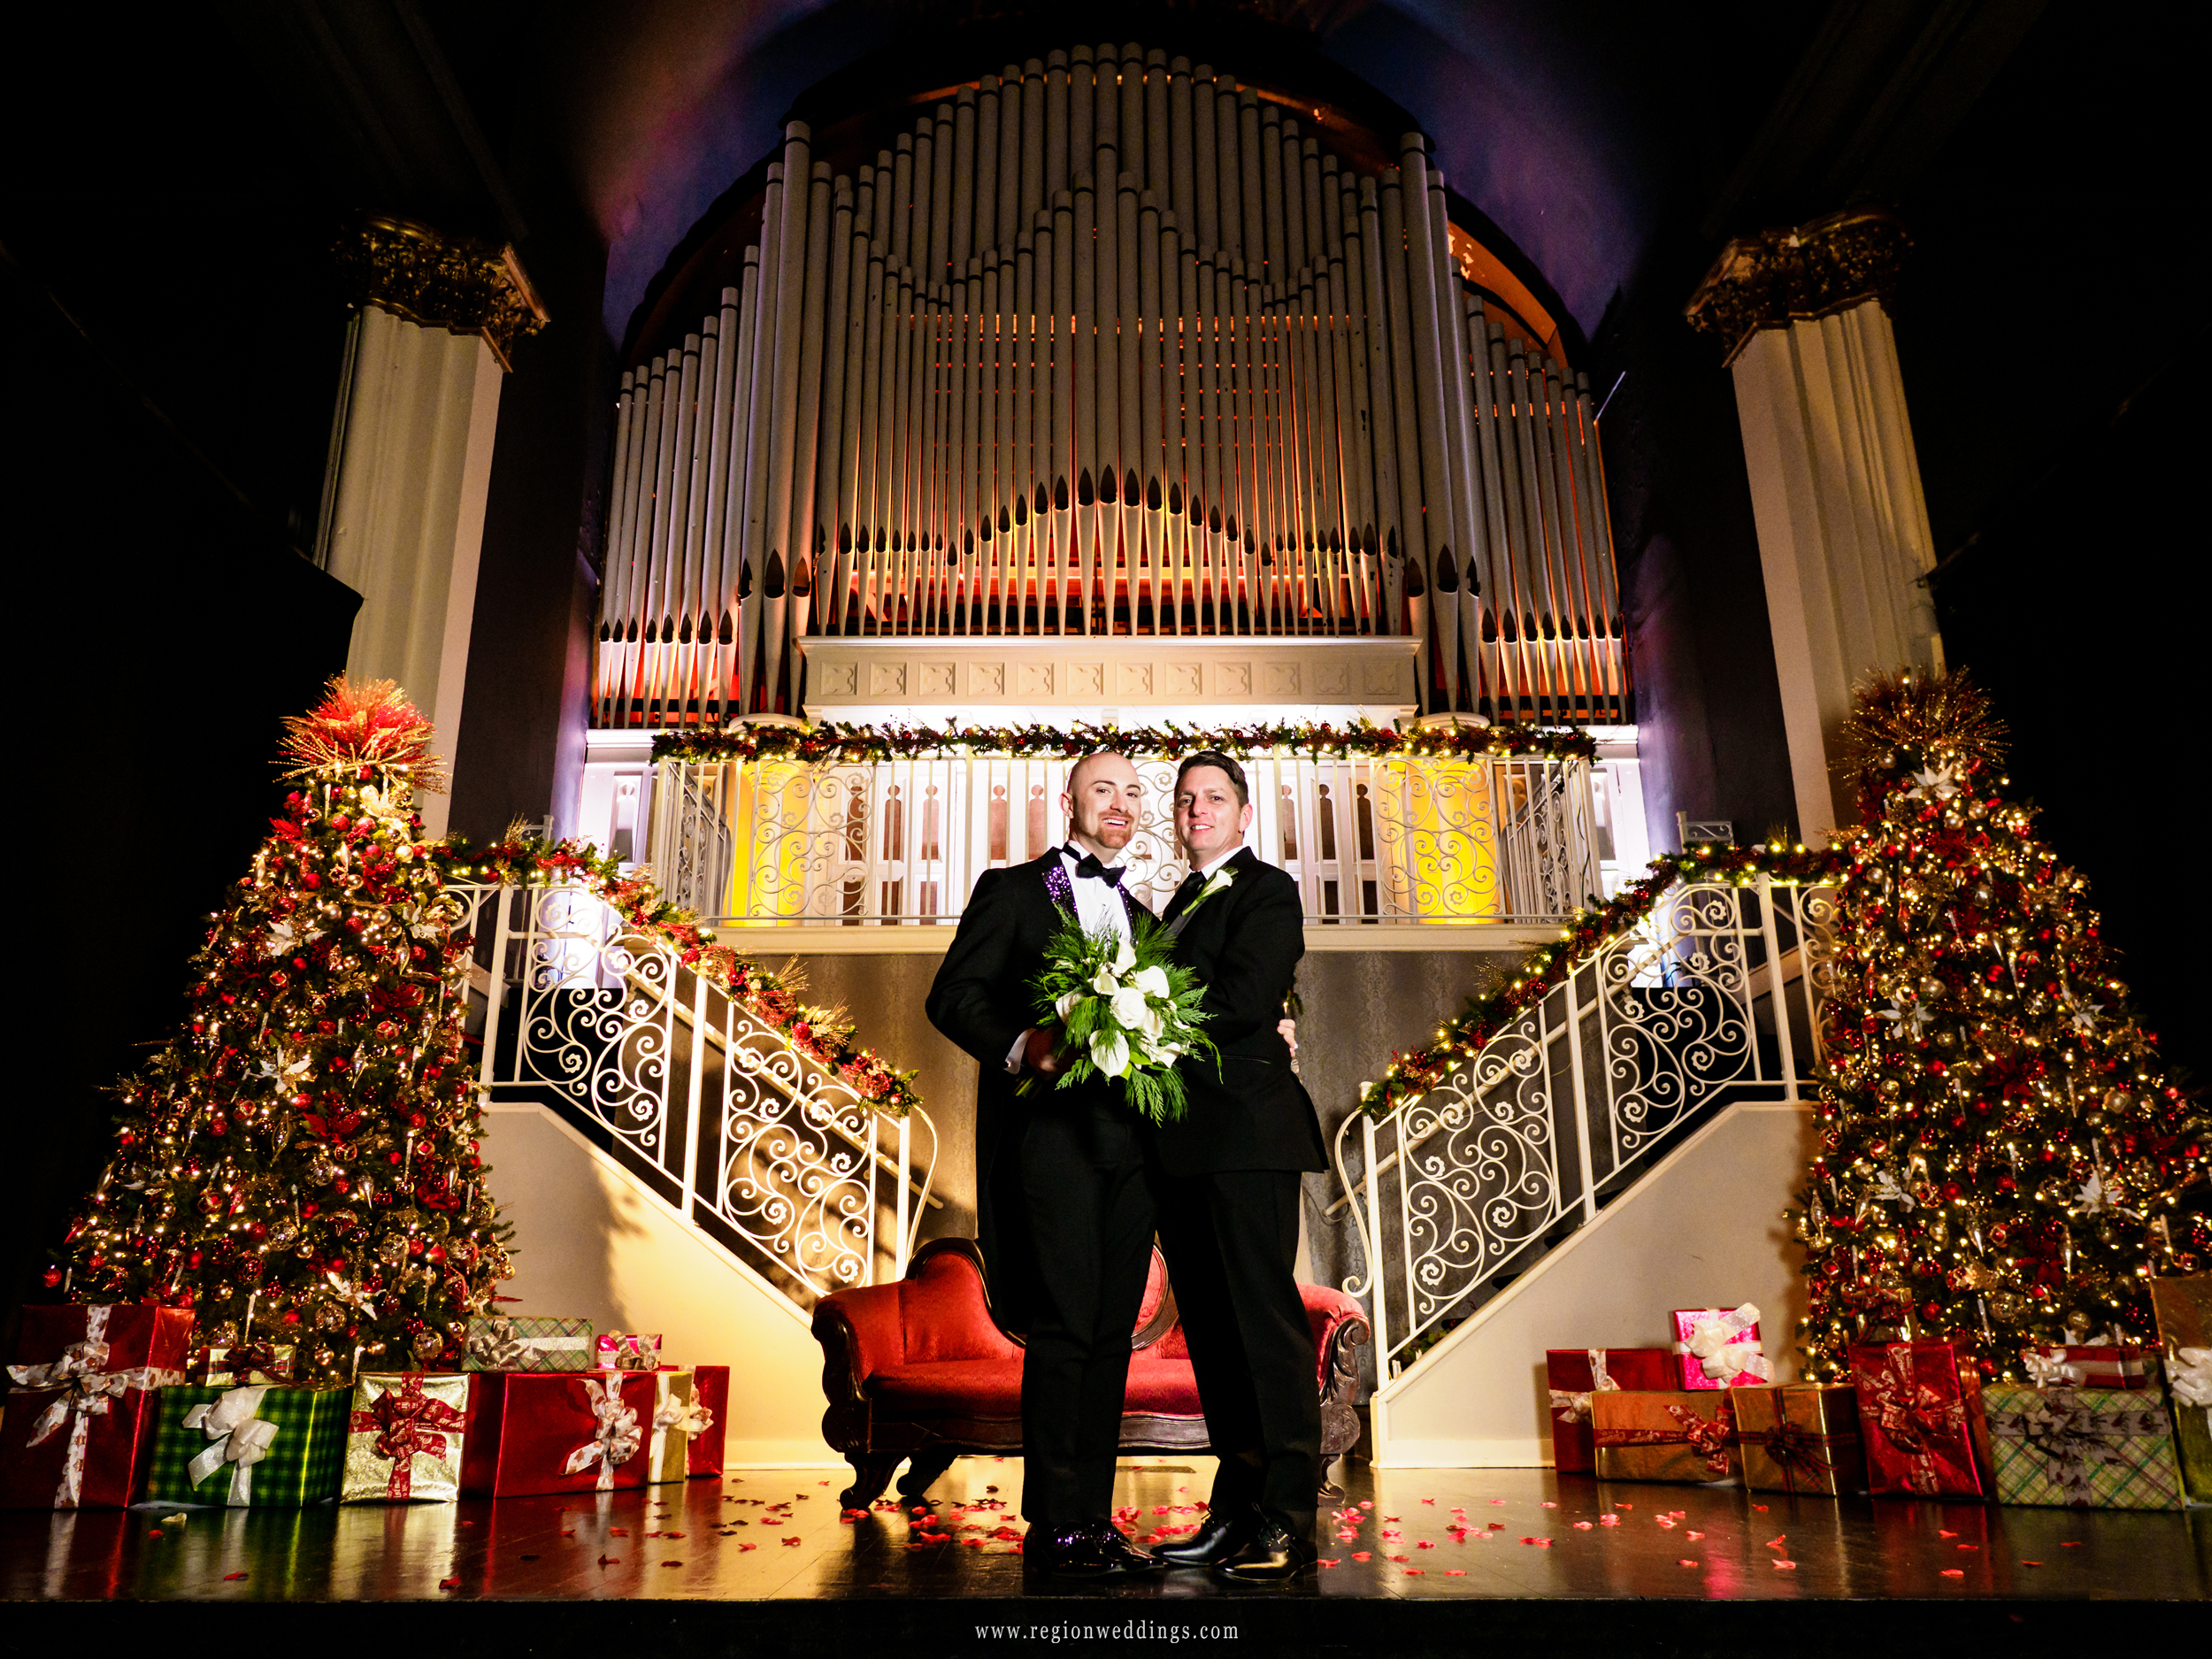 Two grooms, two Christmas trees.